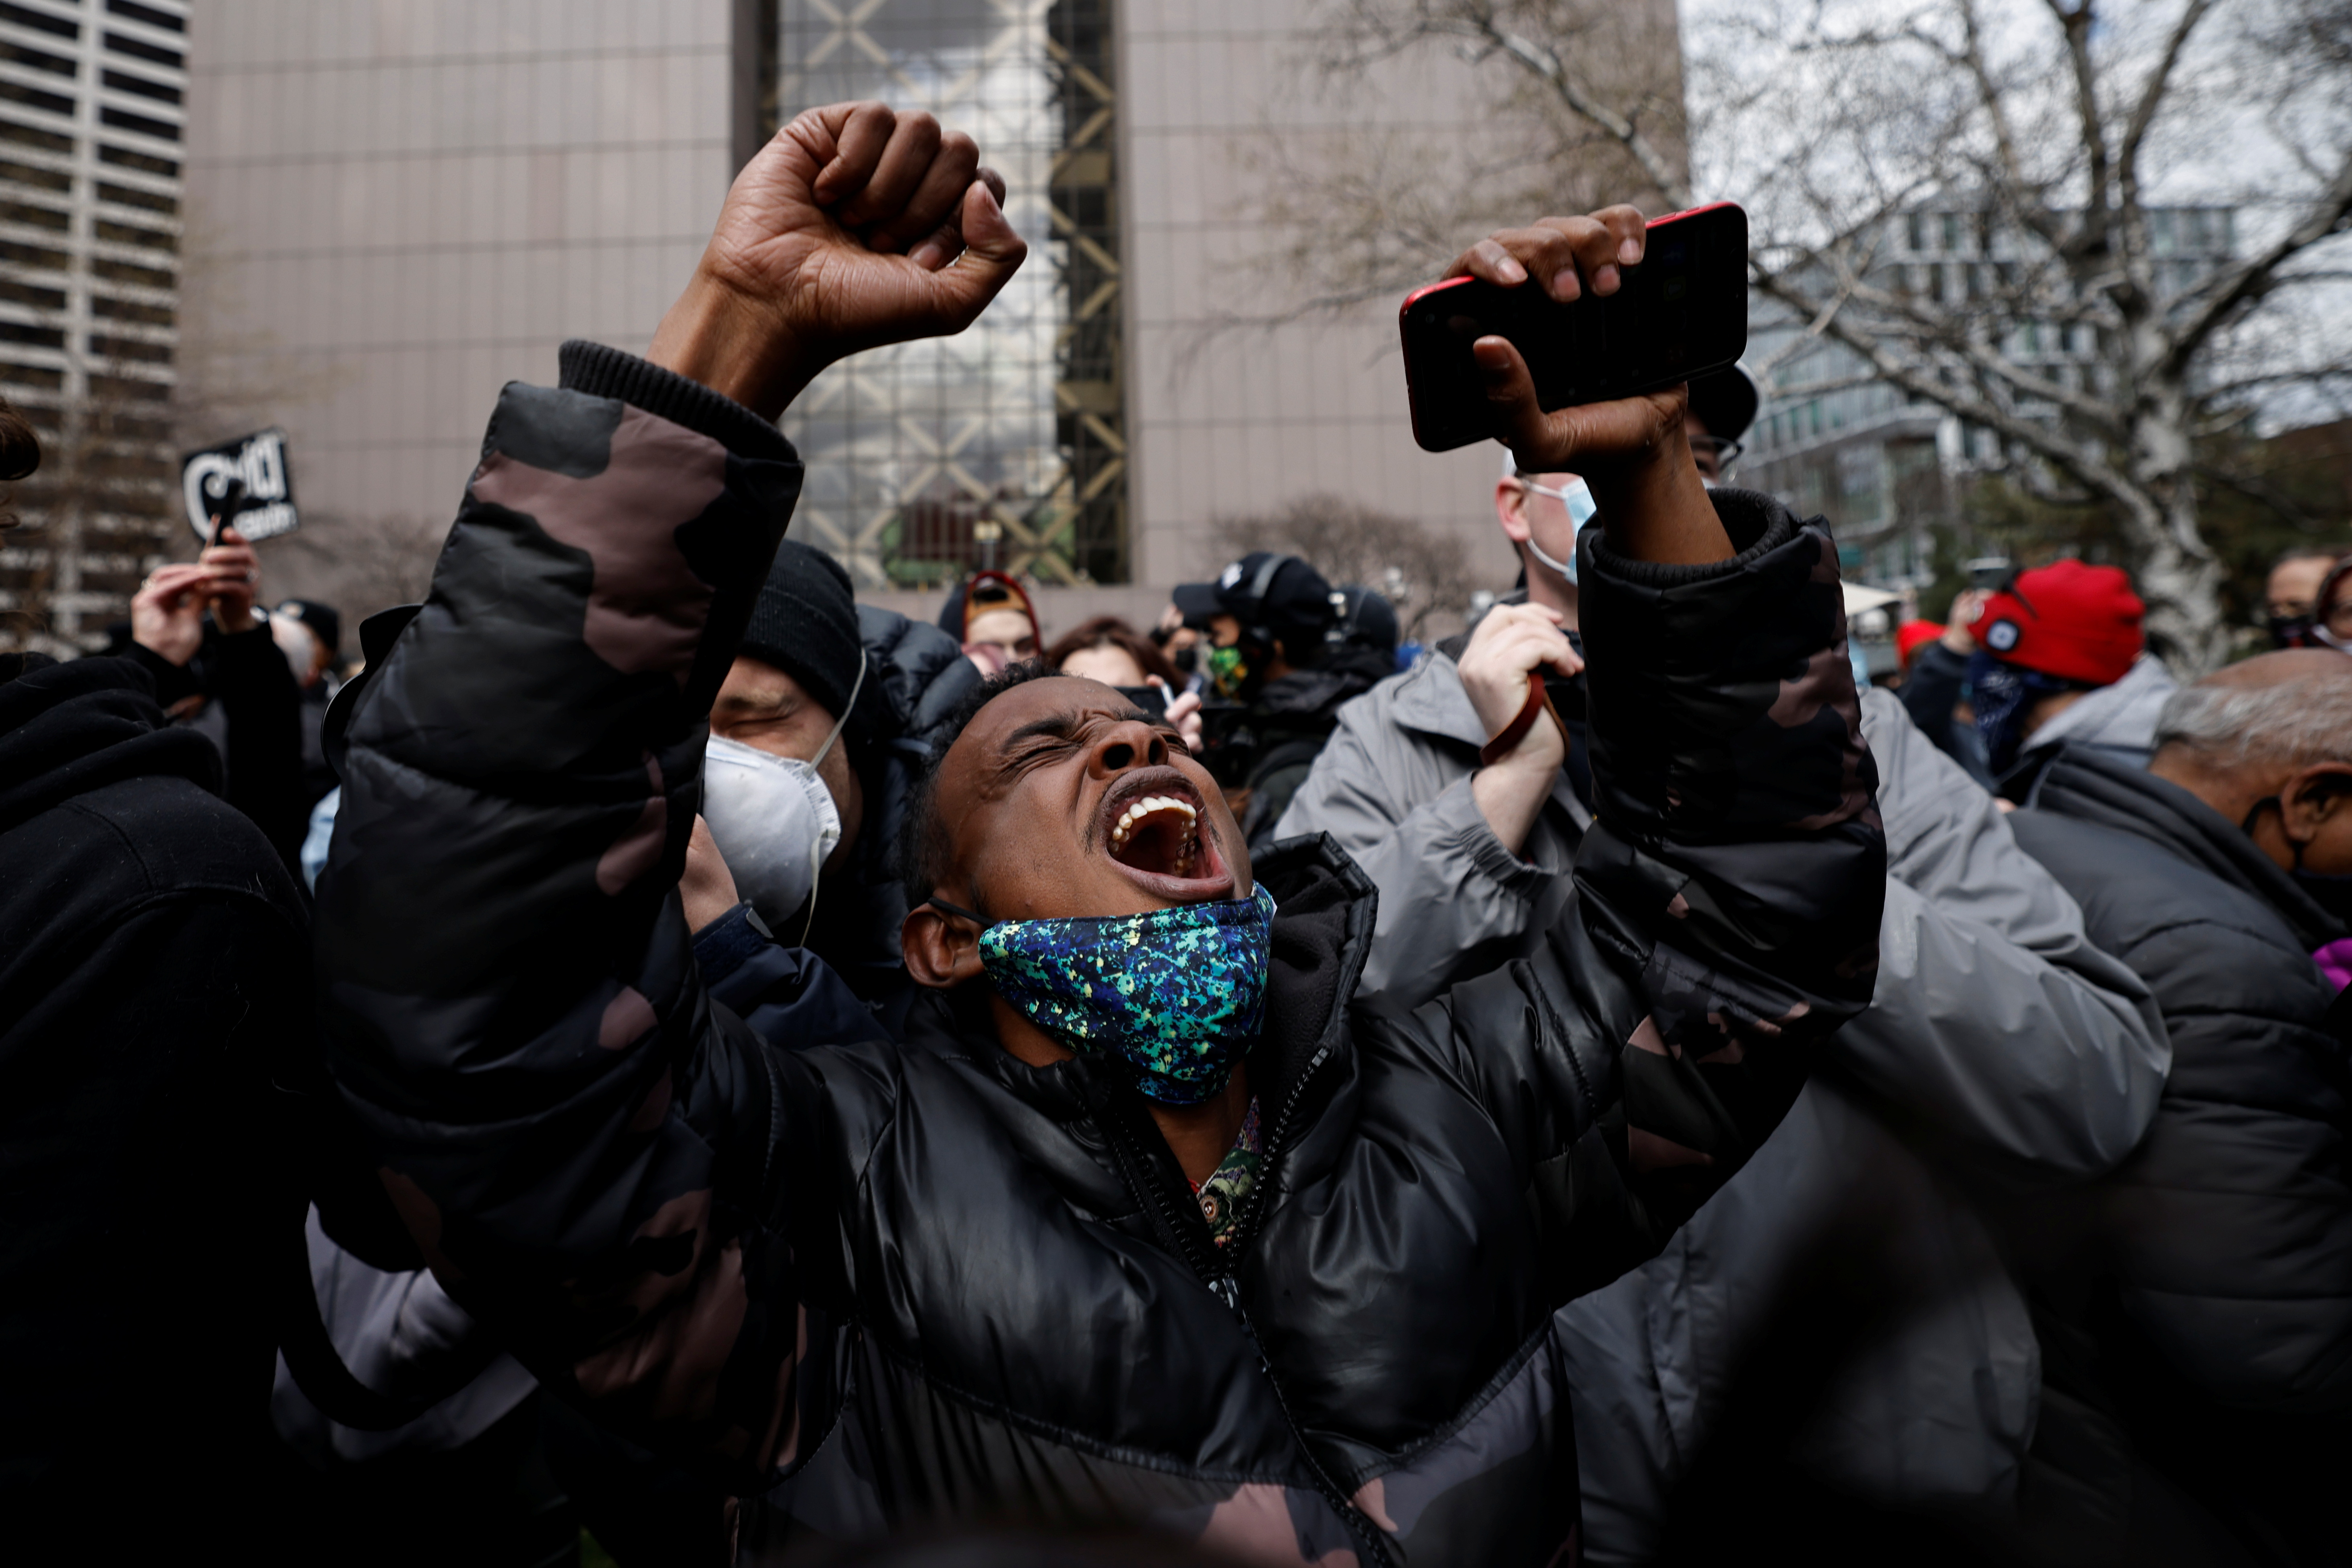 A person reacts after the verdict in the trial of former Minneapolis police officer Derek Chauvin, in the death of George Floyd, in front of Hennepin County Government Center, in Minneapolis, Minnesota, U.S., April 20, 2021. REUTERS/Carlos Barria